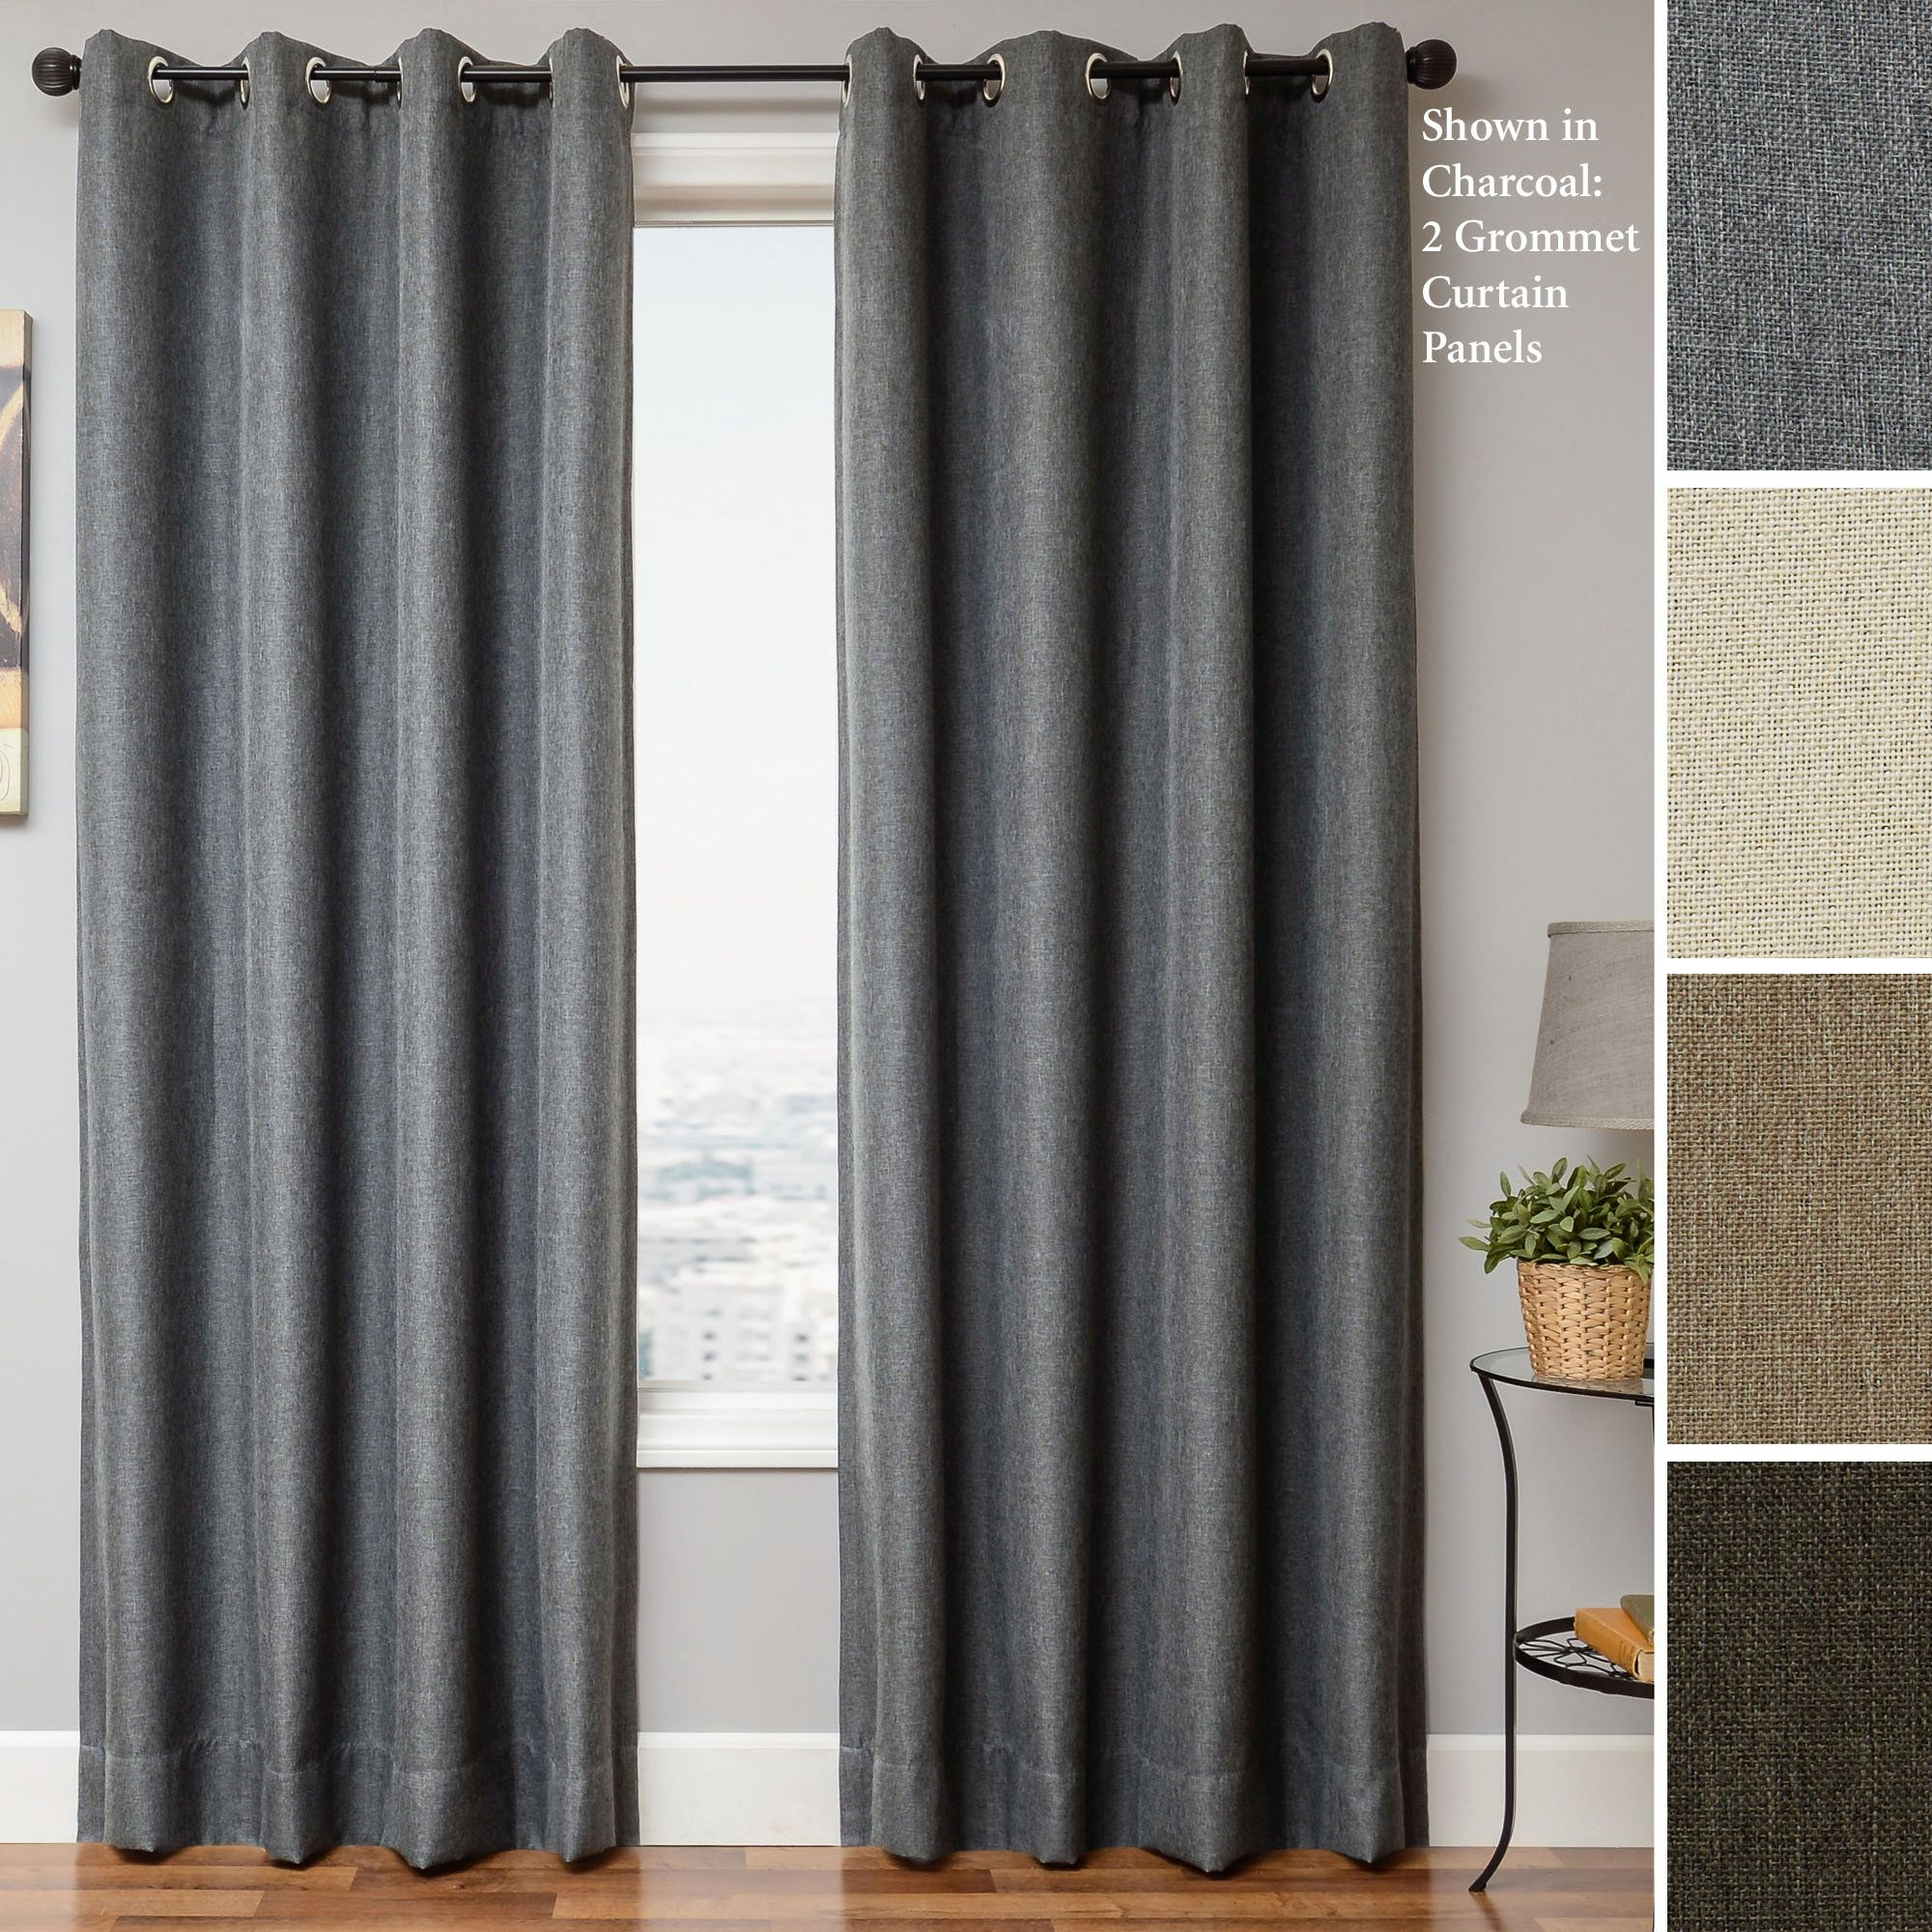 Beautiful Curtain By Jc Penneys Curtains For Window Decor Ideas Solid Grey Blackout